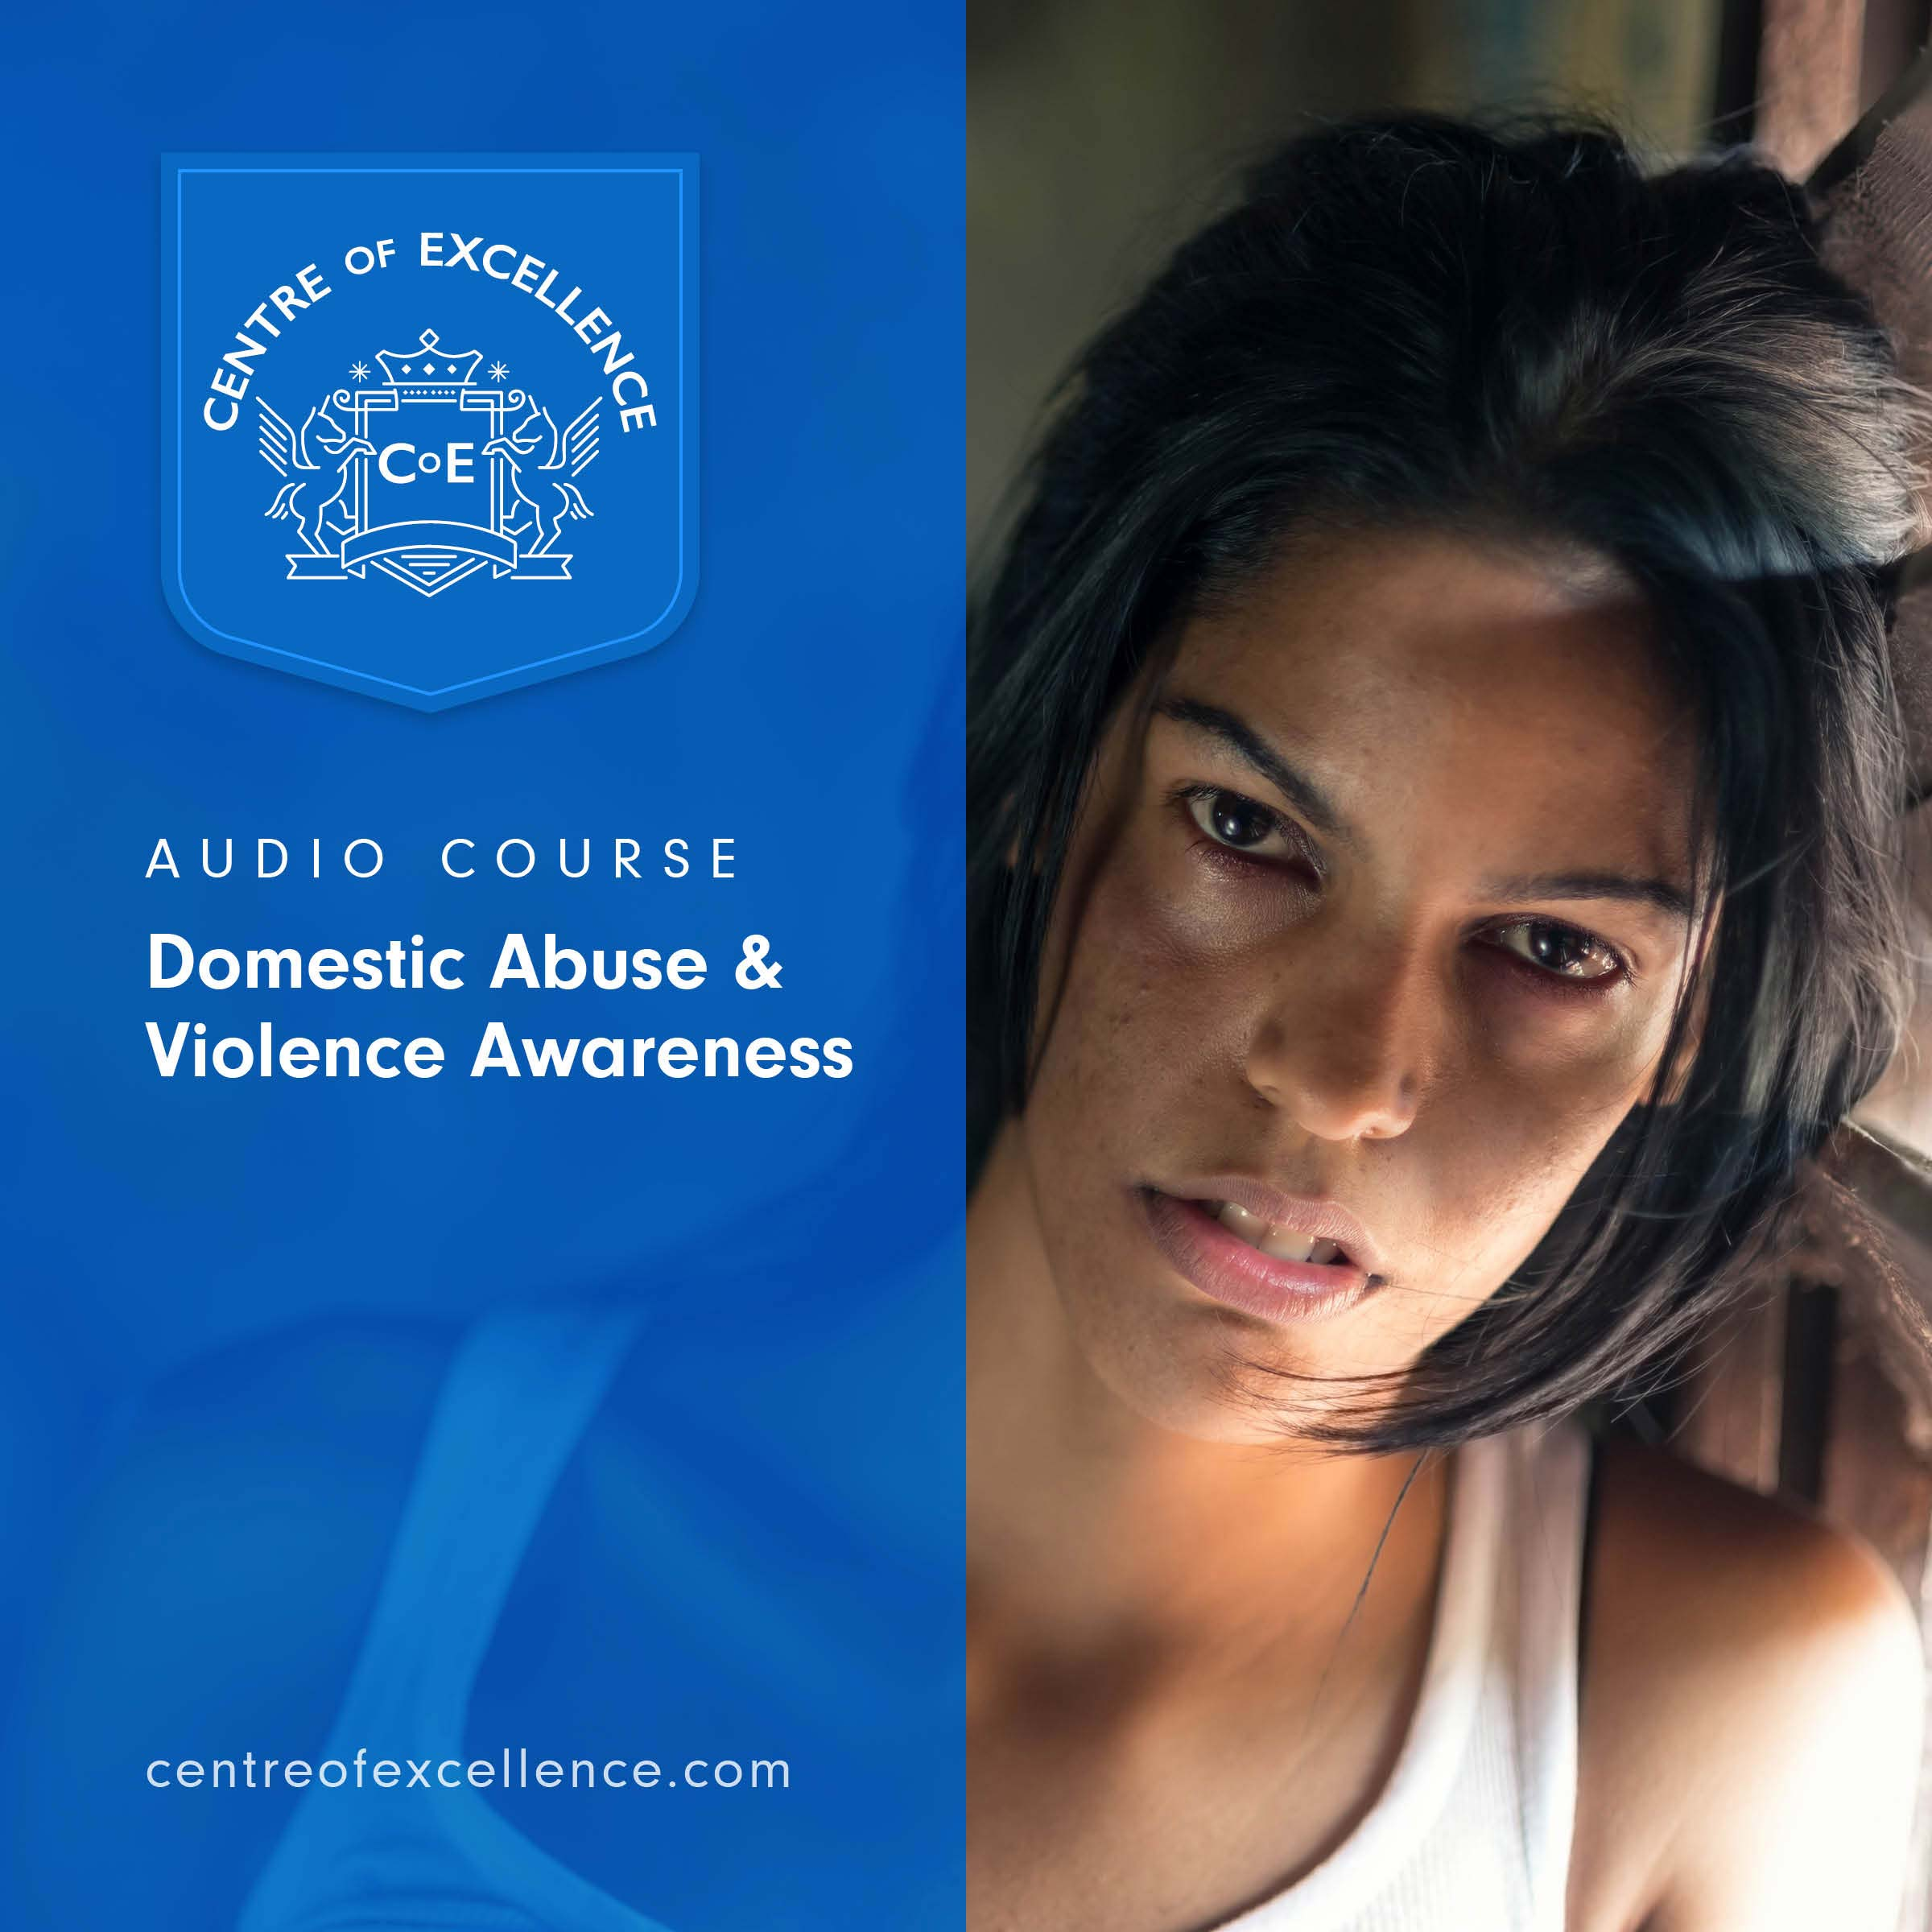 Domestic Abuse & Violence Awareness Audio Course